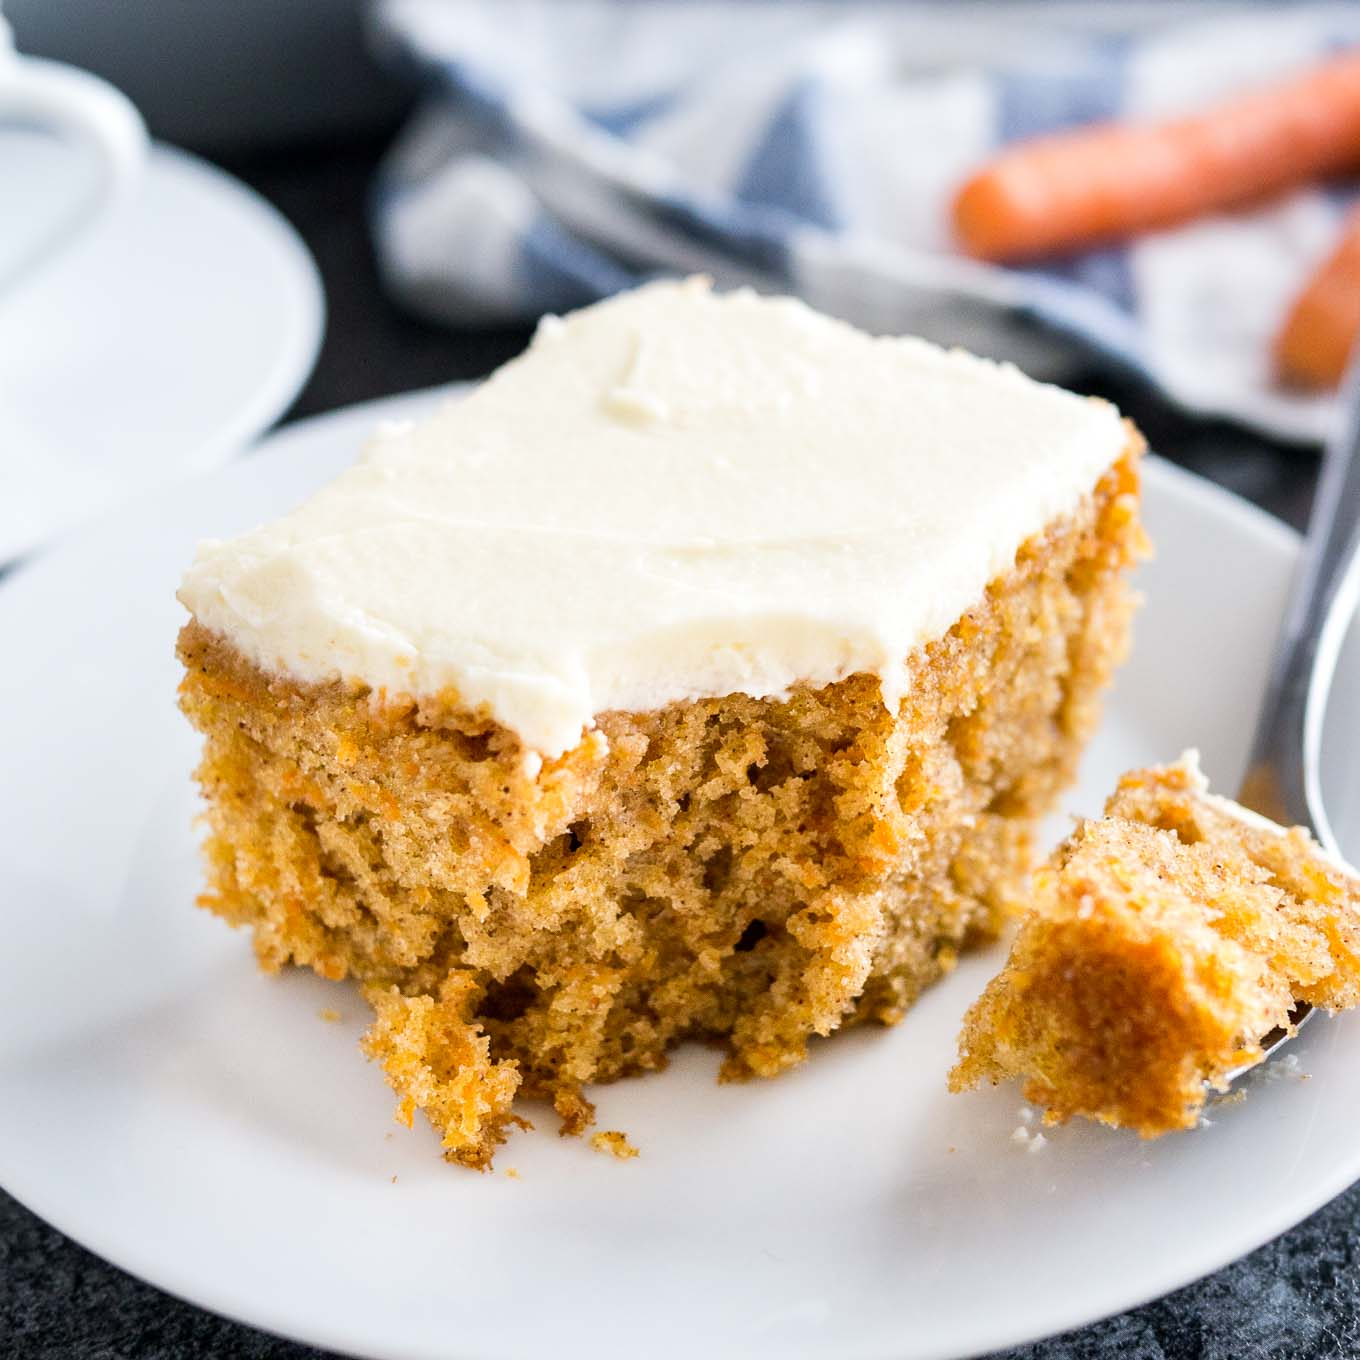 Making Carrot Cake With Mix